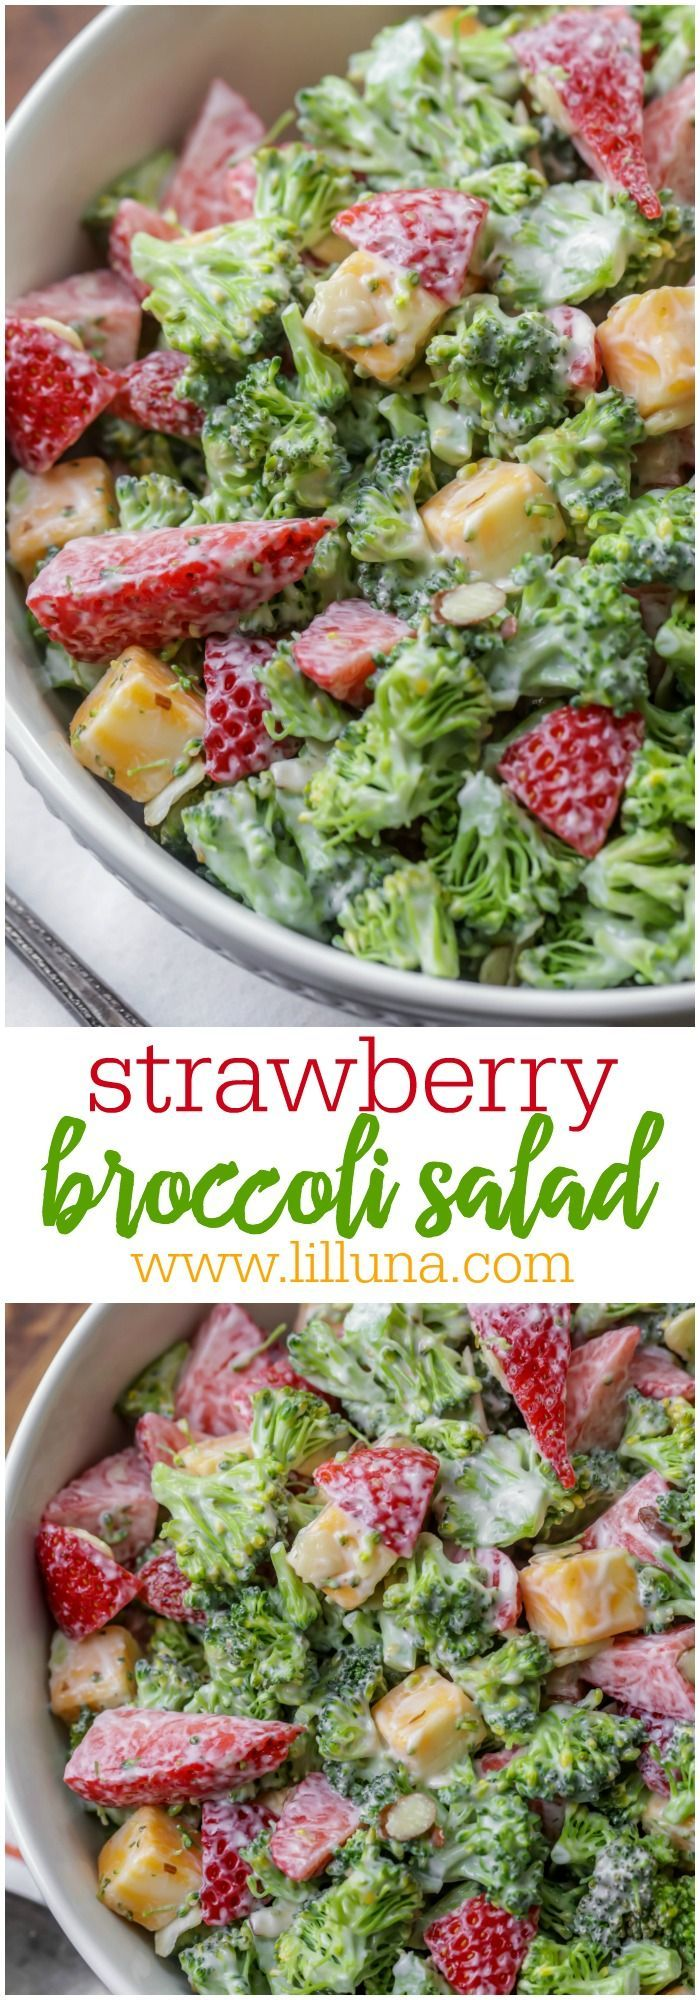 Strawberry Broccoli Salad - this unexpected combination makes for the perfect summertime salad! And it only takes a handful of ingredients! Broccoli florets, cojack cheese, and sliced strawberries, and almonds all tossed in a delicious dressing.